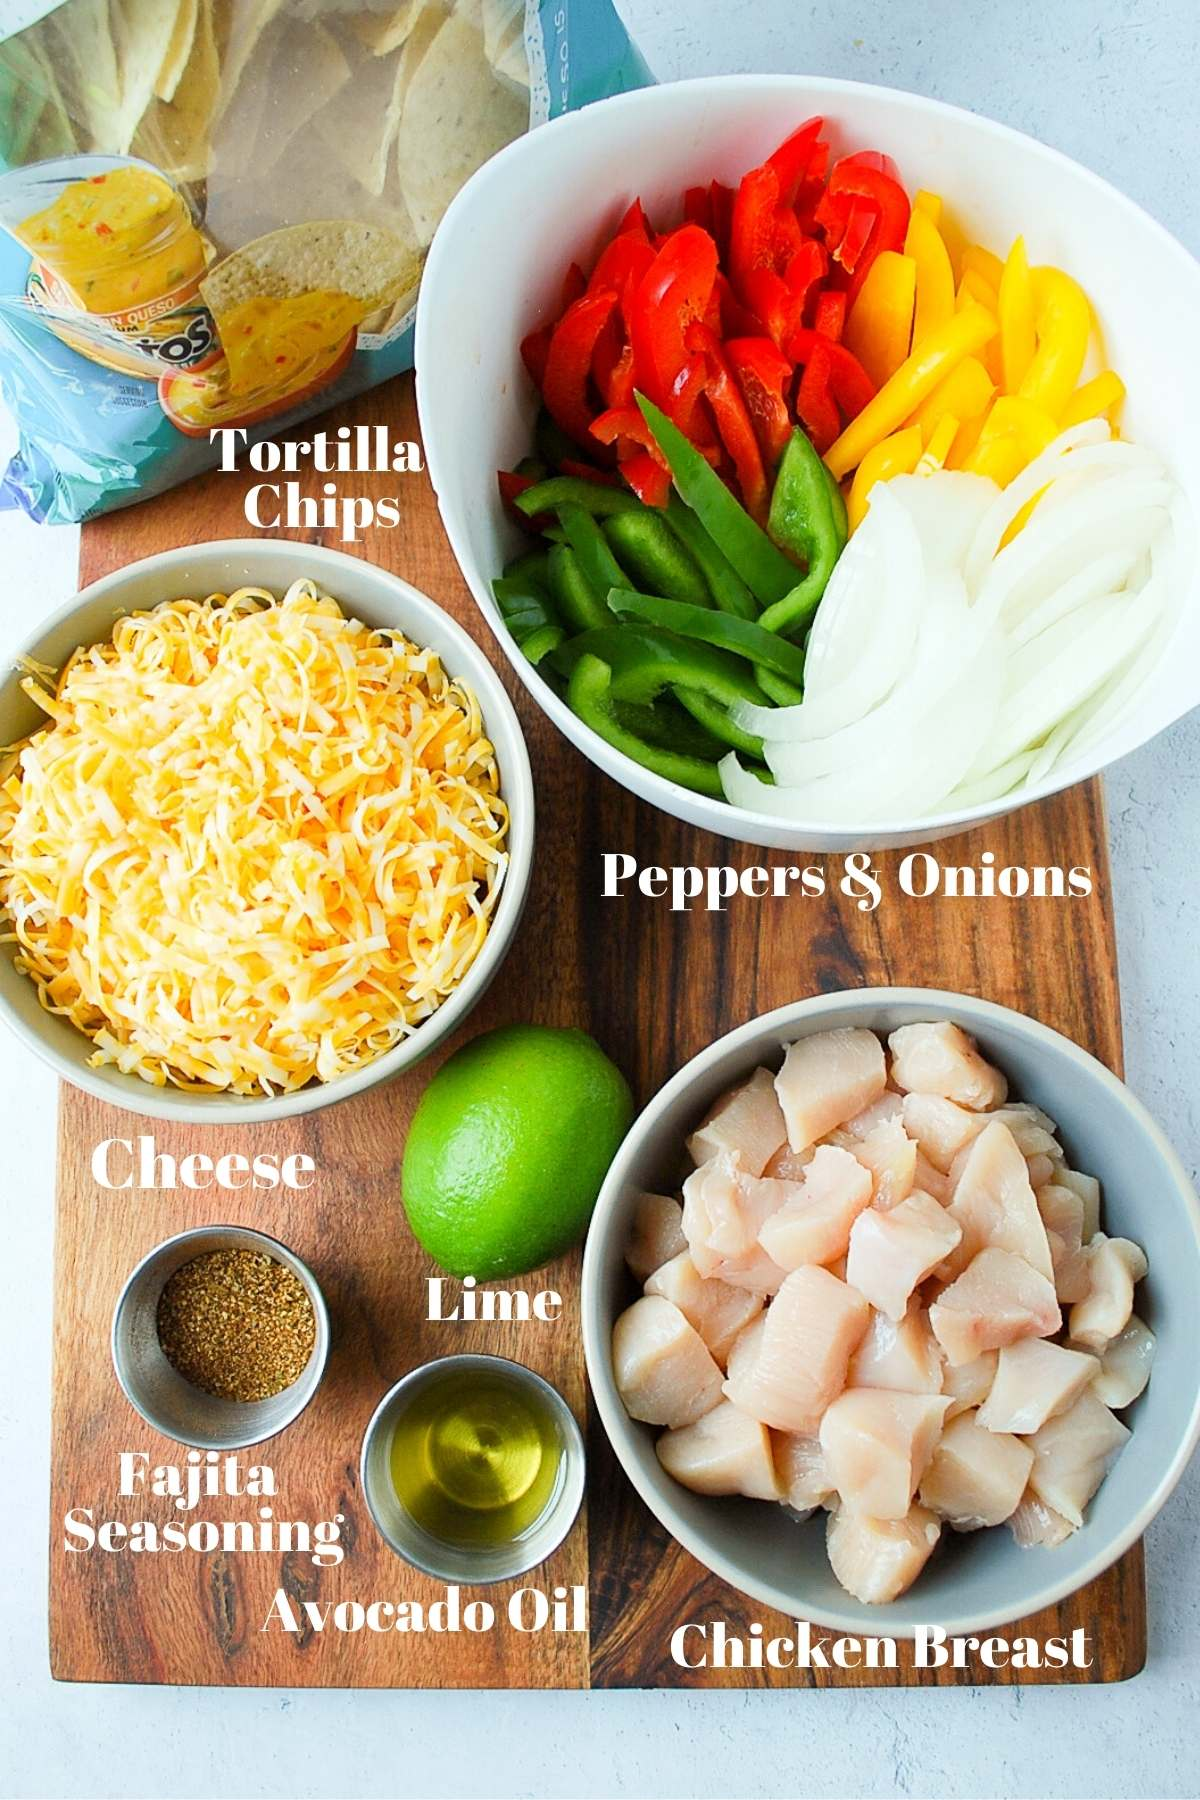 bag of tortilla chips, bowl of cheese, bowl of chicken, bowl of peppers and onions, a lime, oil, and fajita seasoning on a cutting board